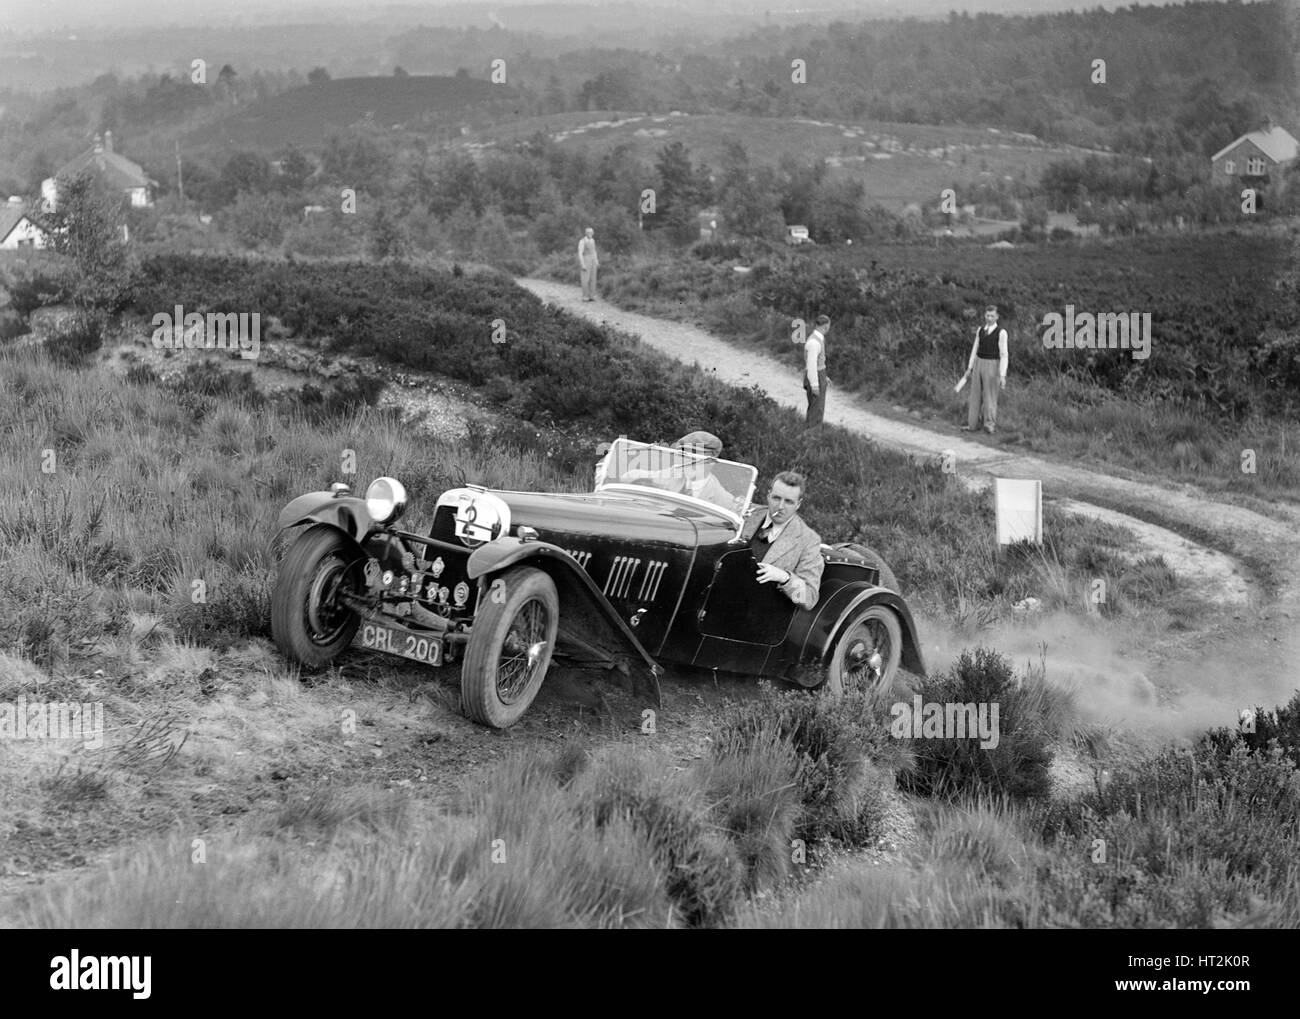 1937 HRG 2-seater sports of WP Uglow taking part in the NWLMC Lawrence Cup Trial, 1937. Artist: Bill Brunell. - Stock Image